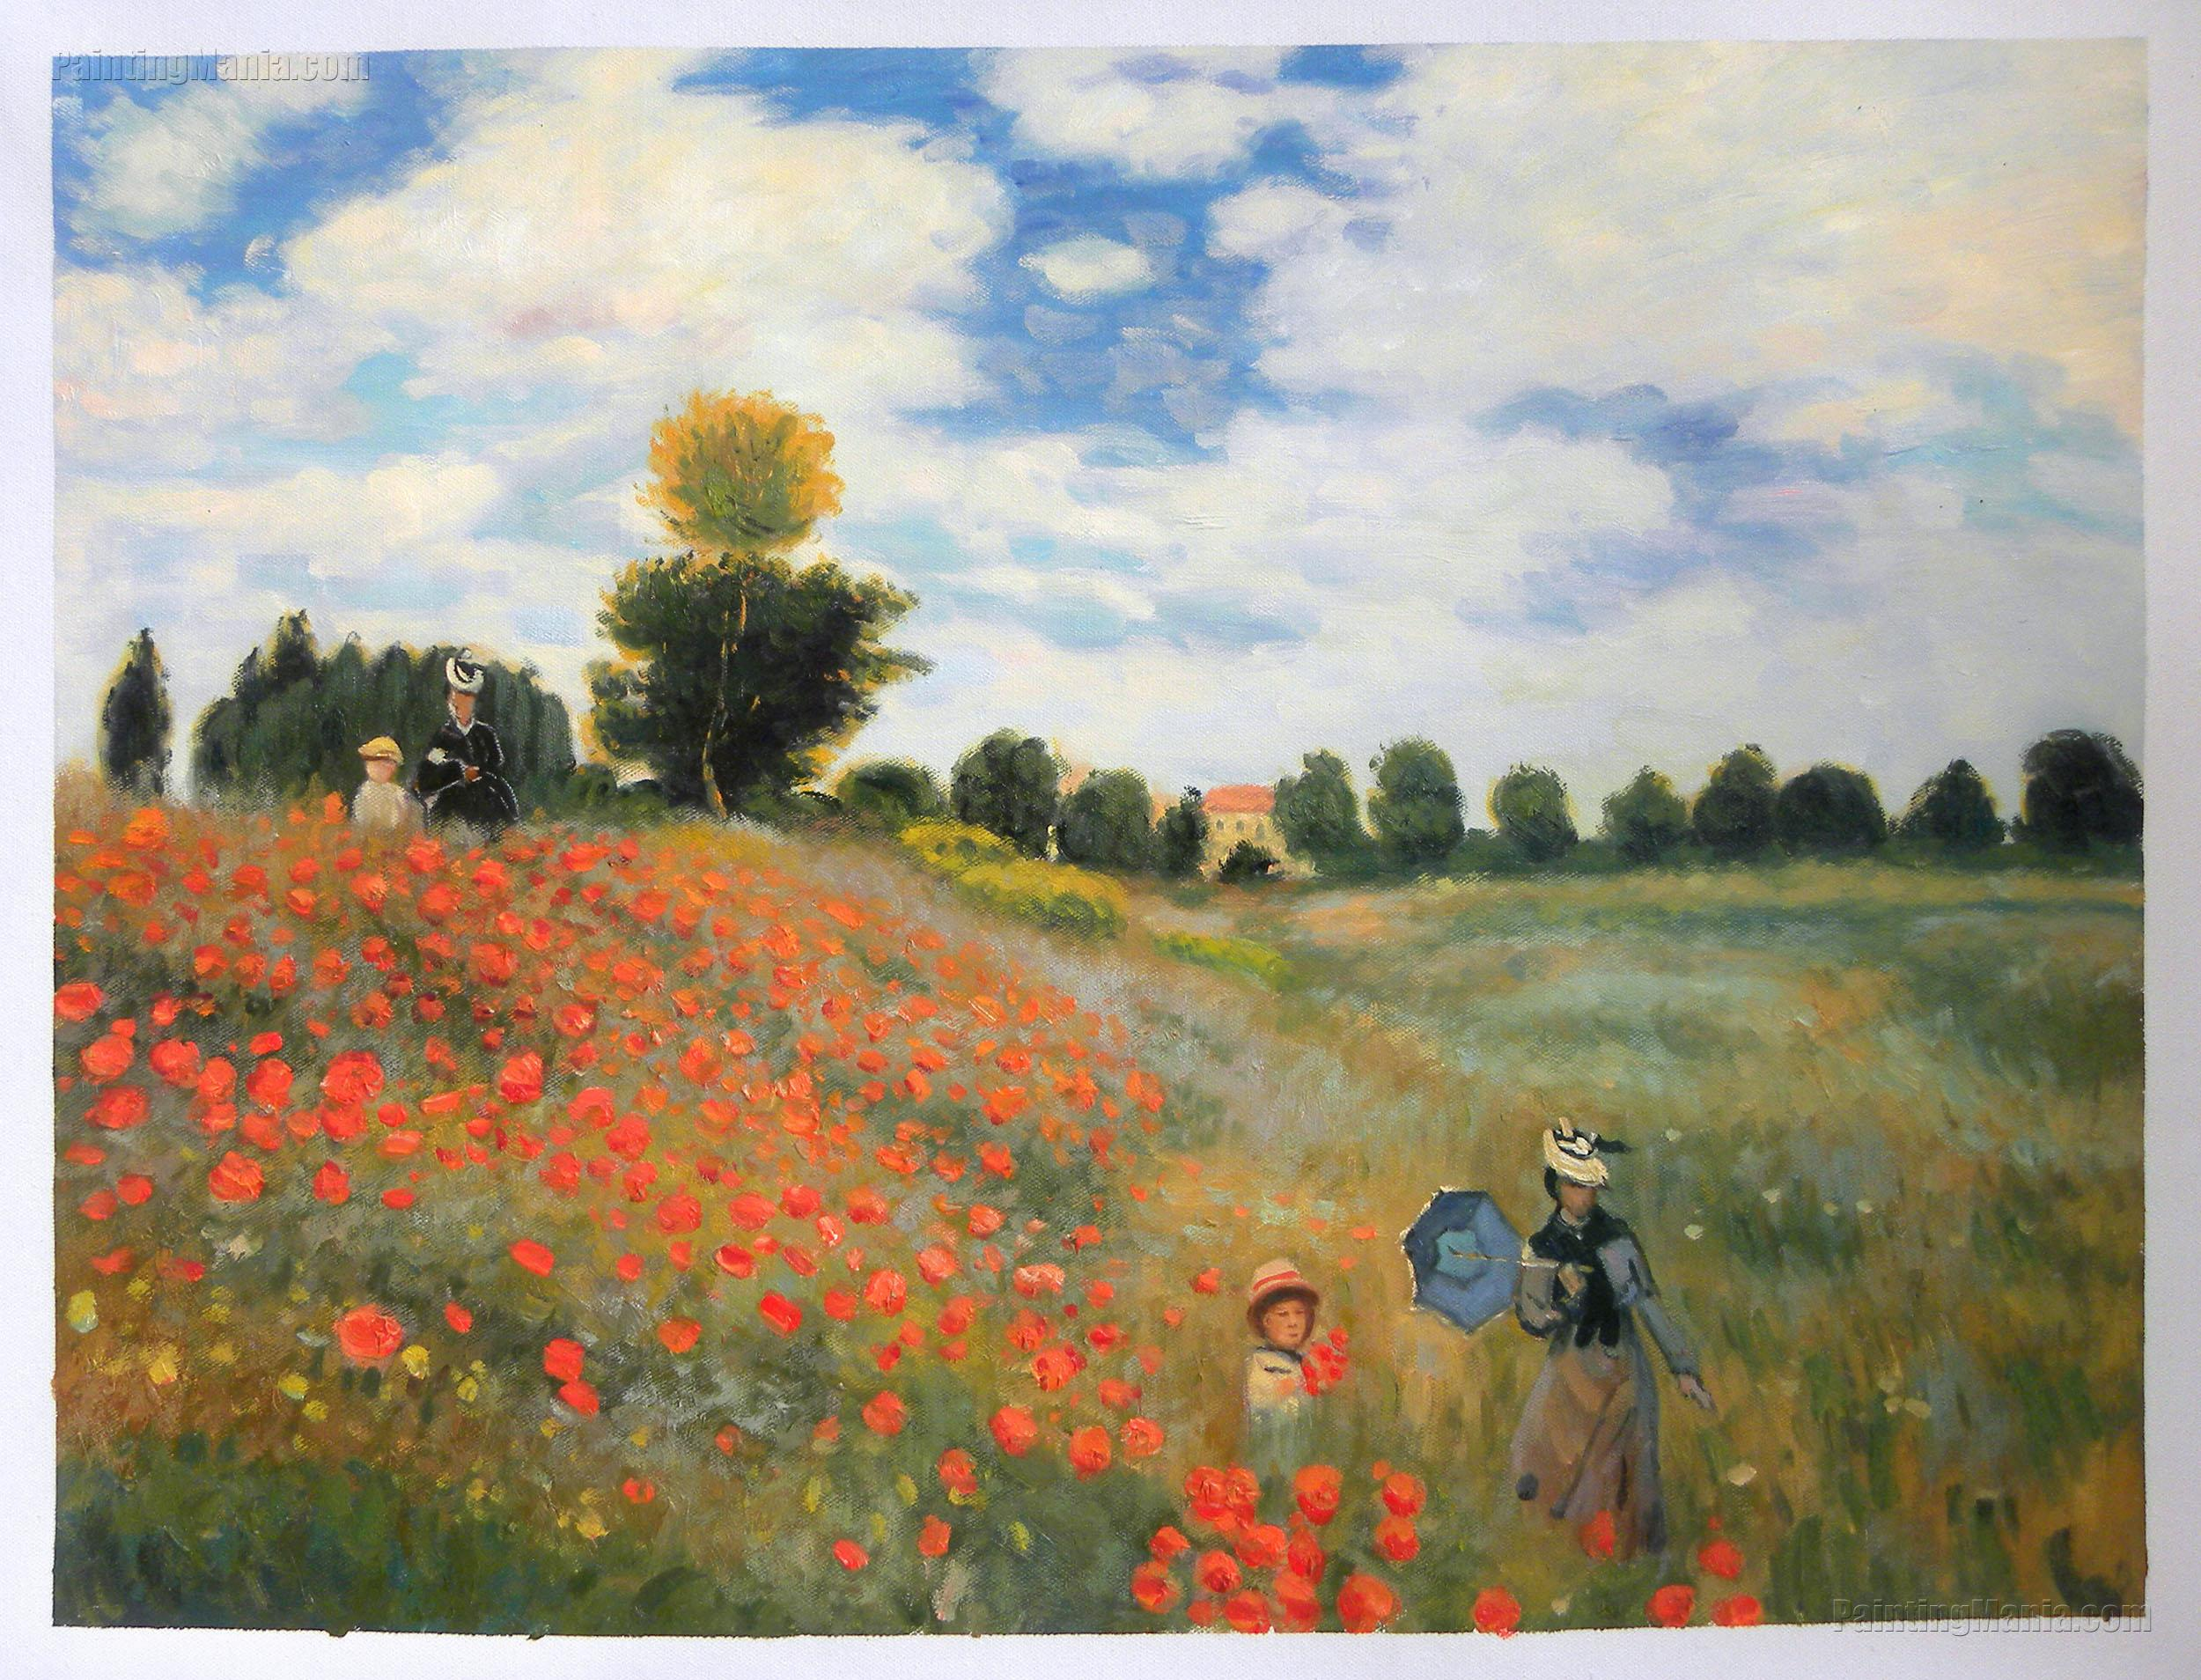 Field Of Poppies Argenteuil Claude Monet Paintings Picture To Pin On Pinterest  PinsDaddy